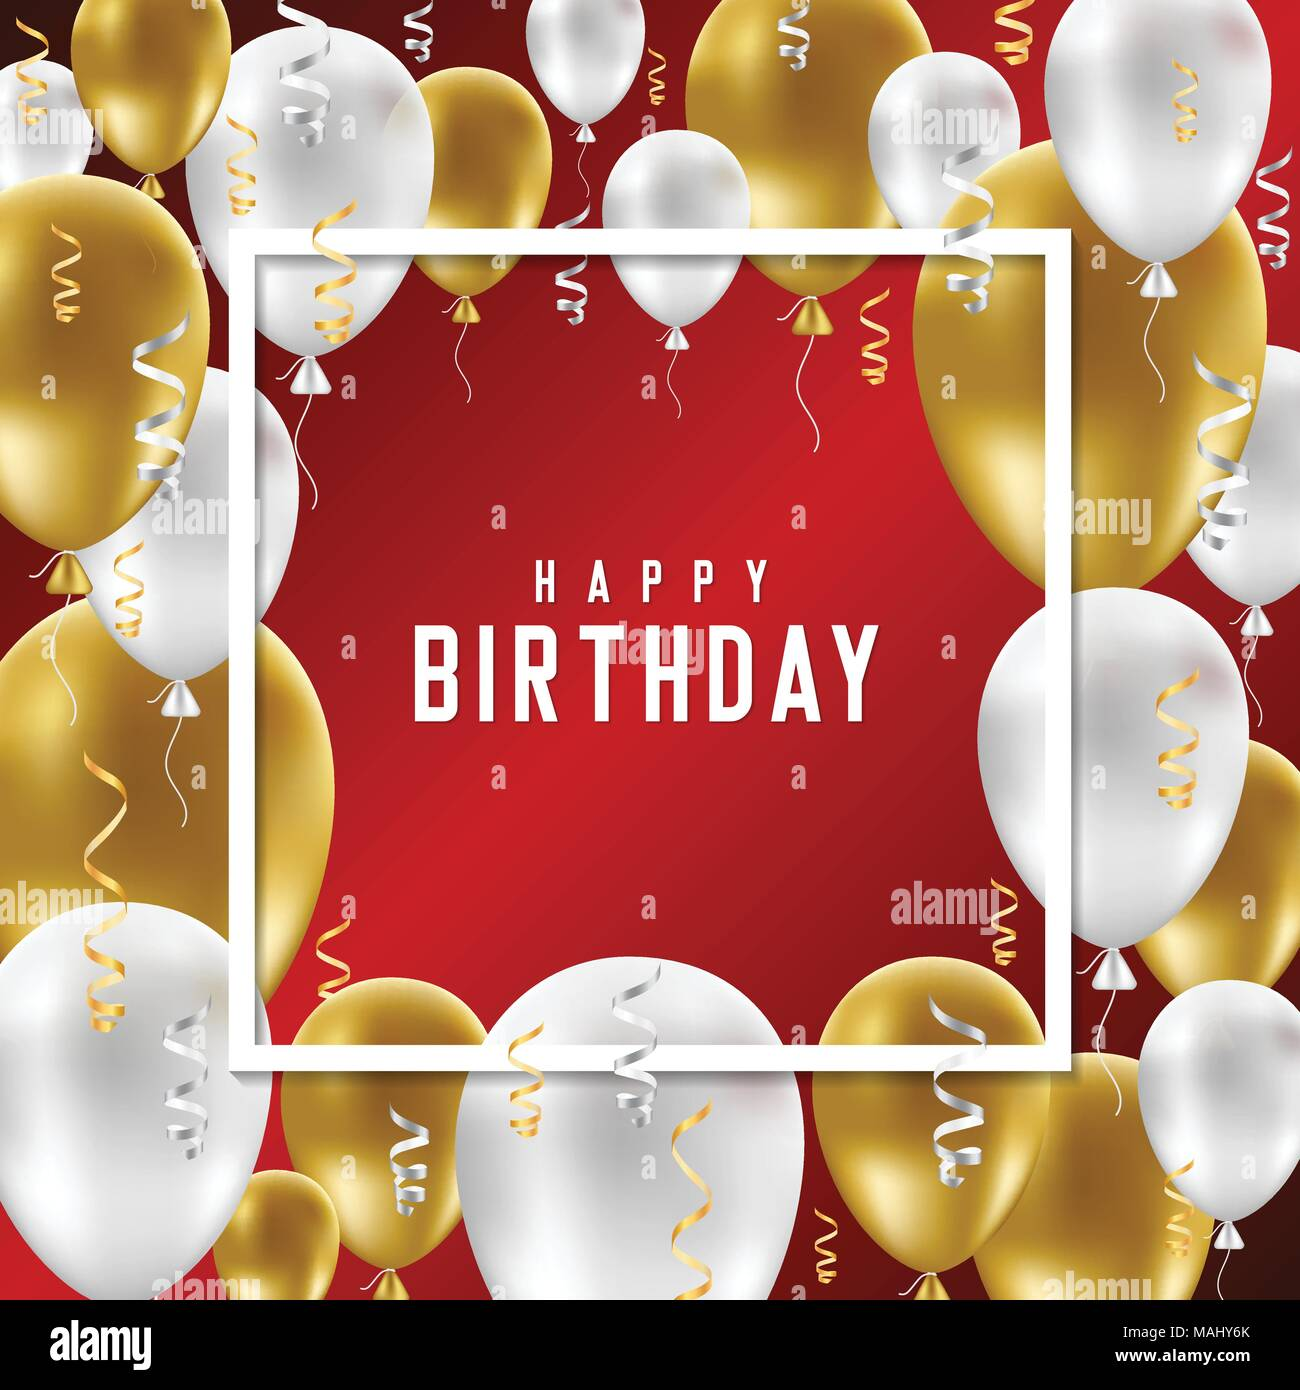 Happy Birthday Greeting Card With Golden And White Balloons On Red Background Vector Illustration